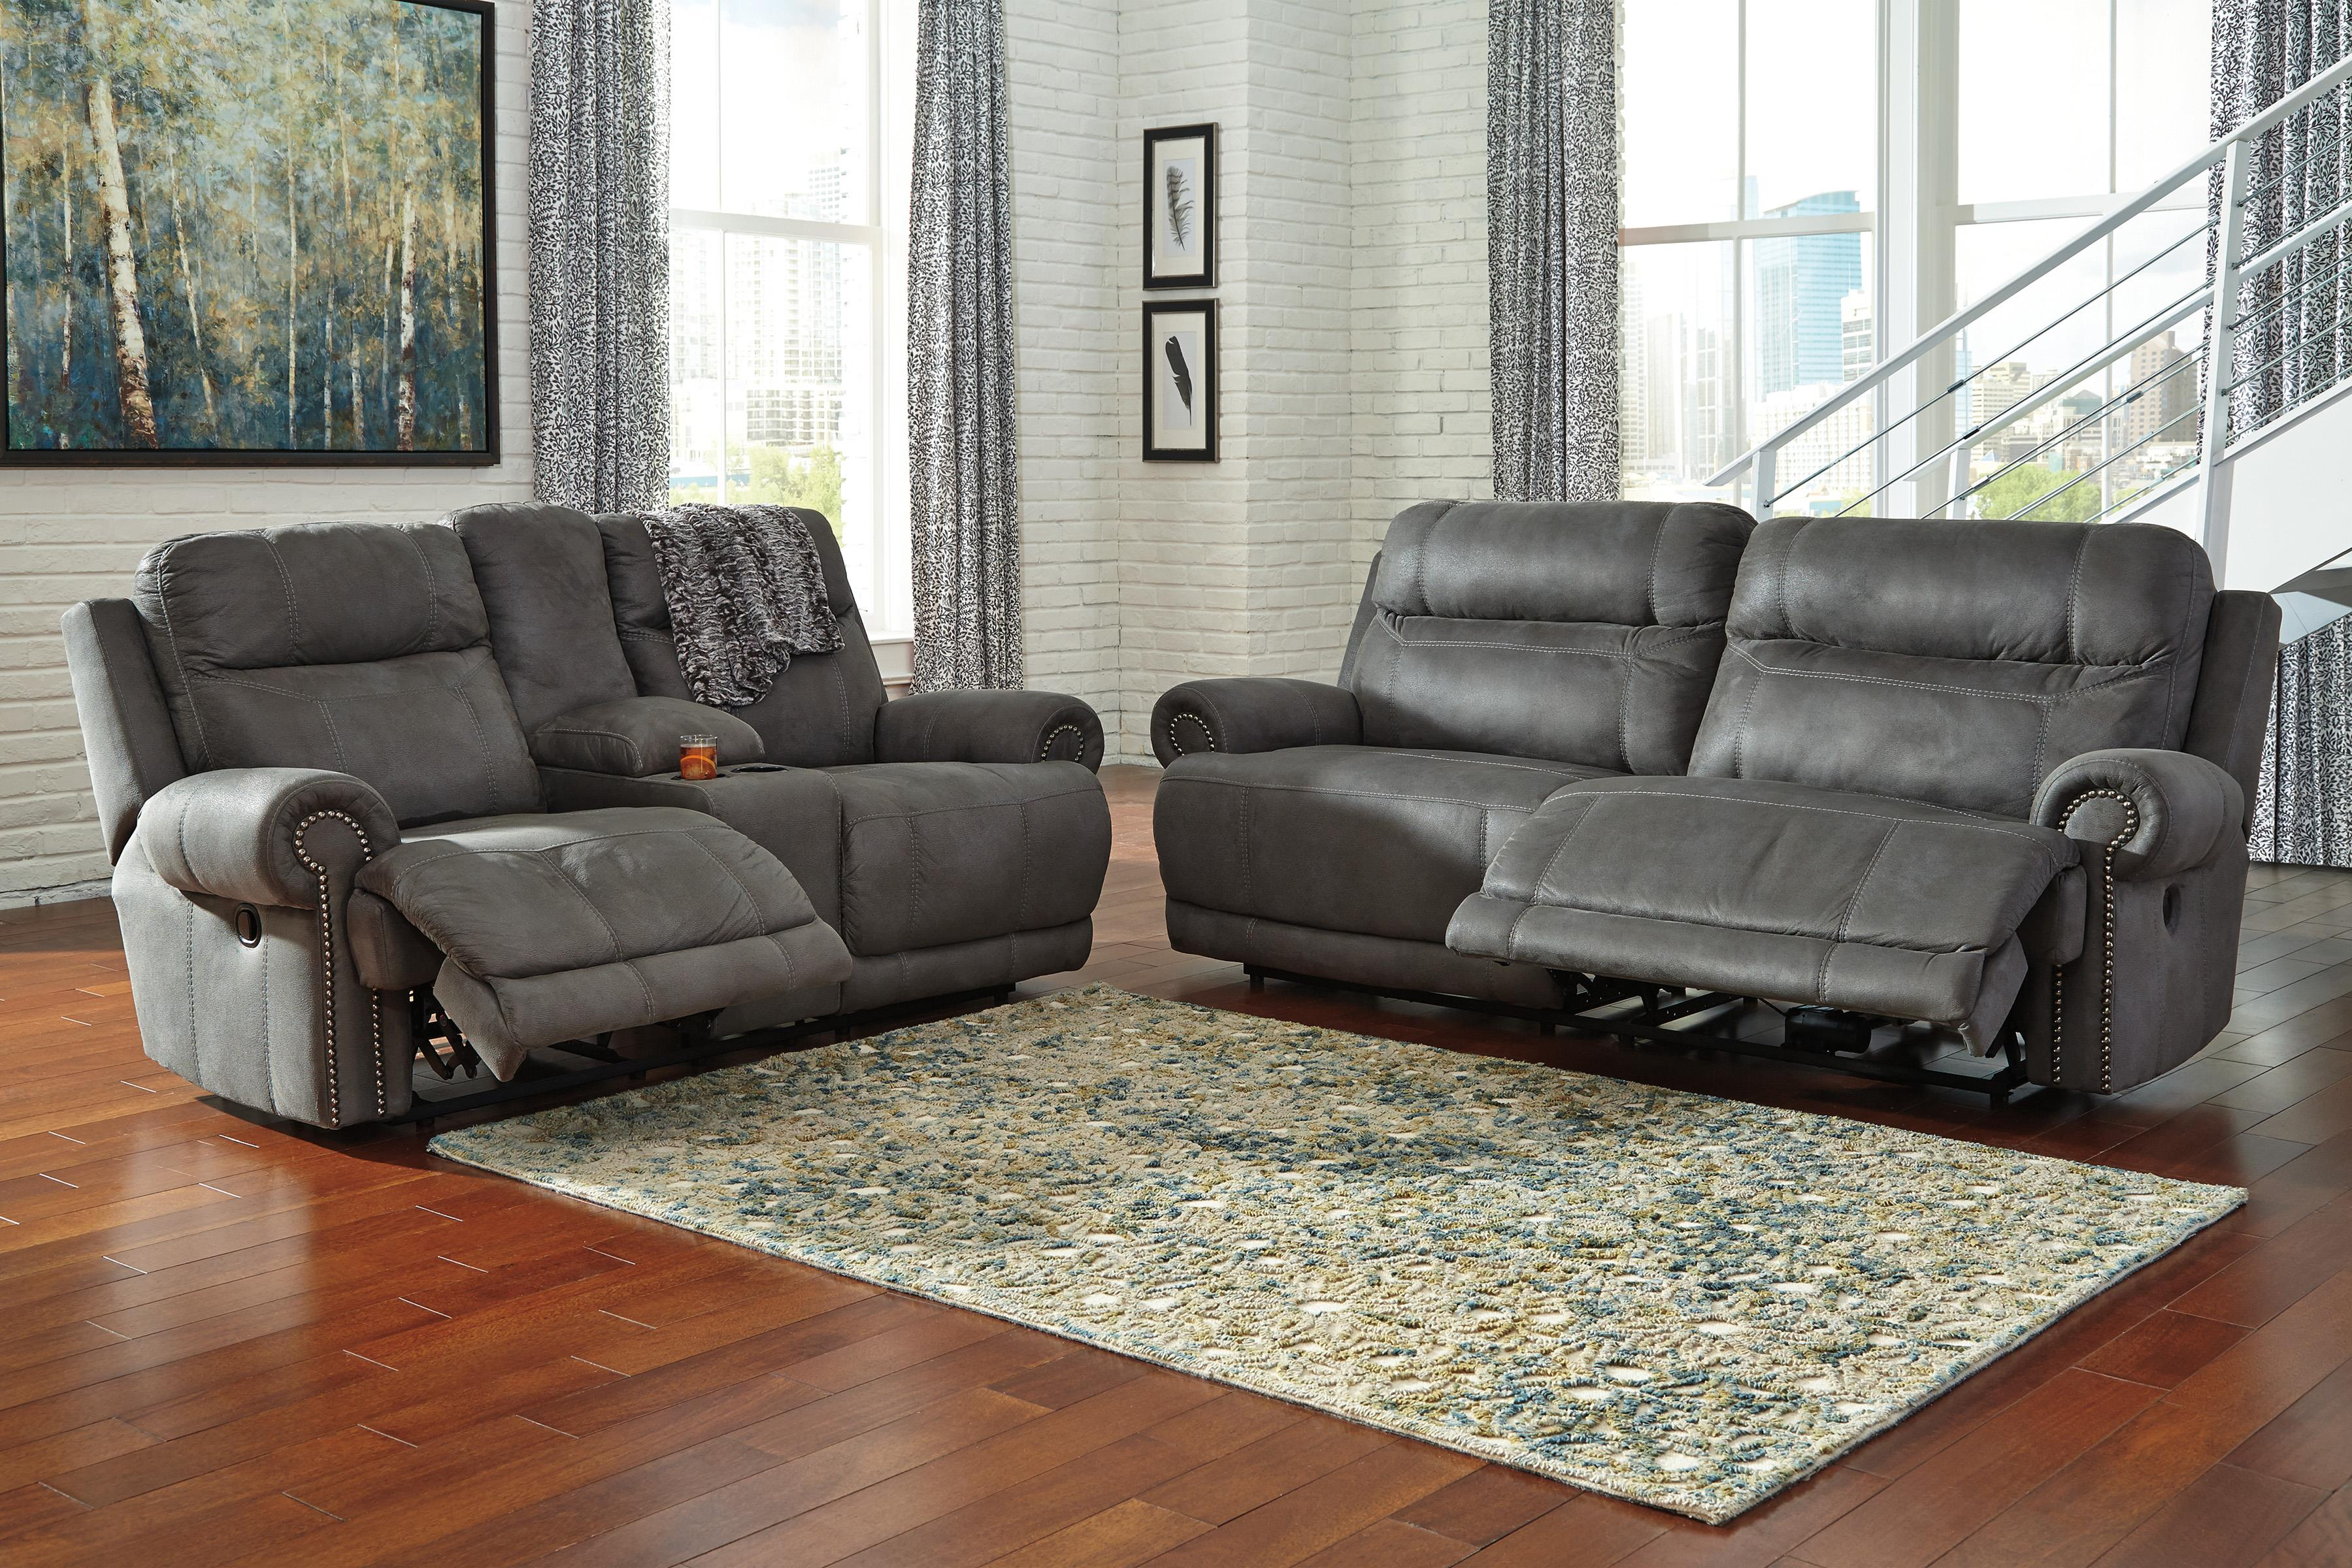 Signature Design by Ashley Austere Gray 2 Seat Reclining